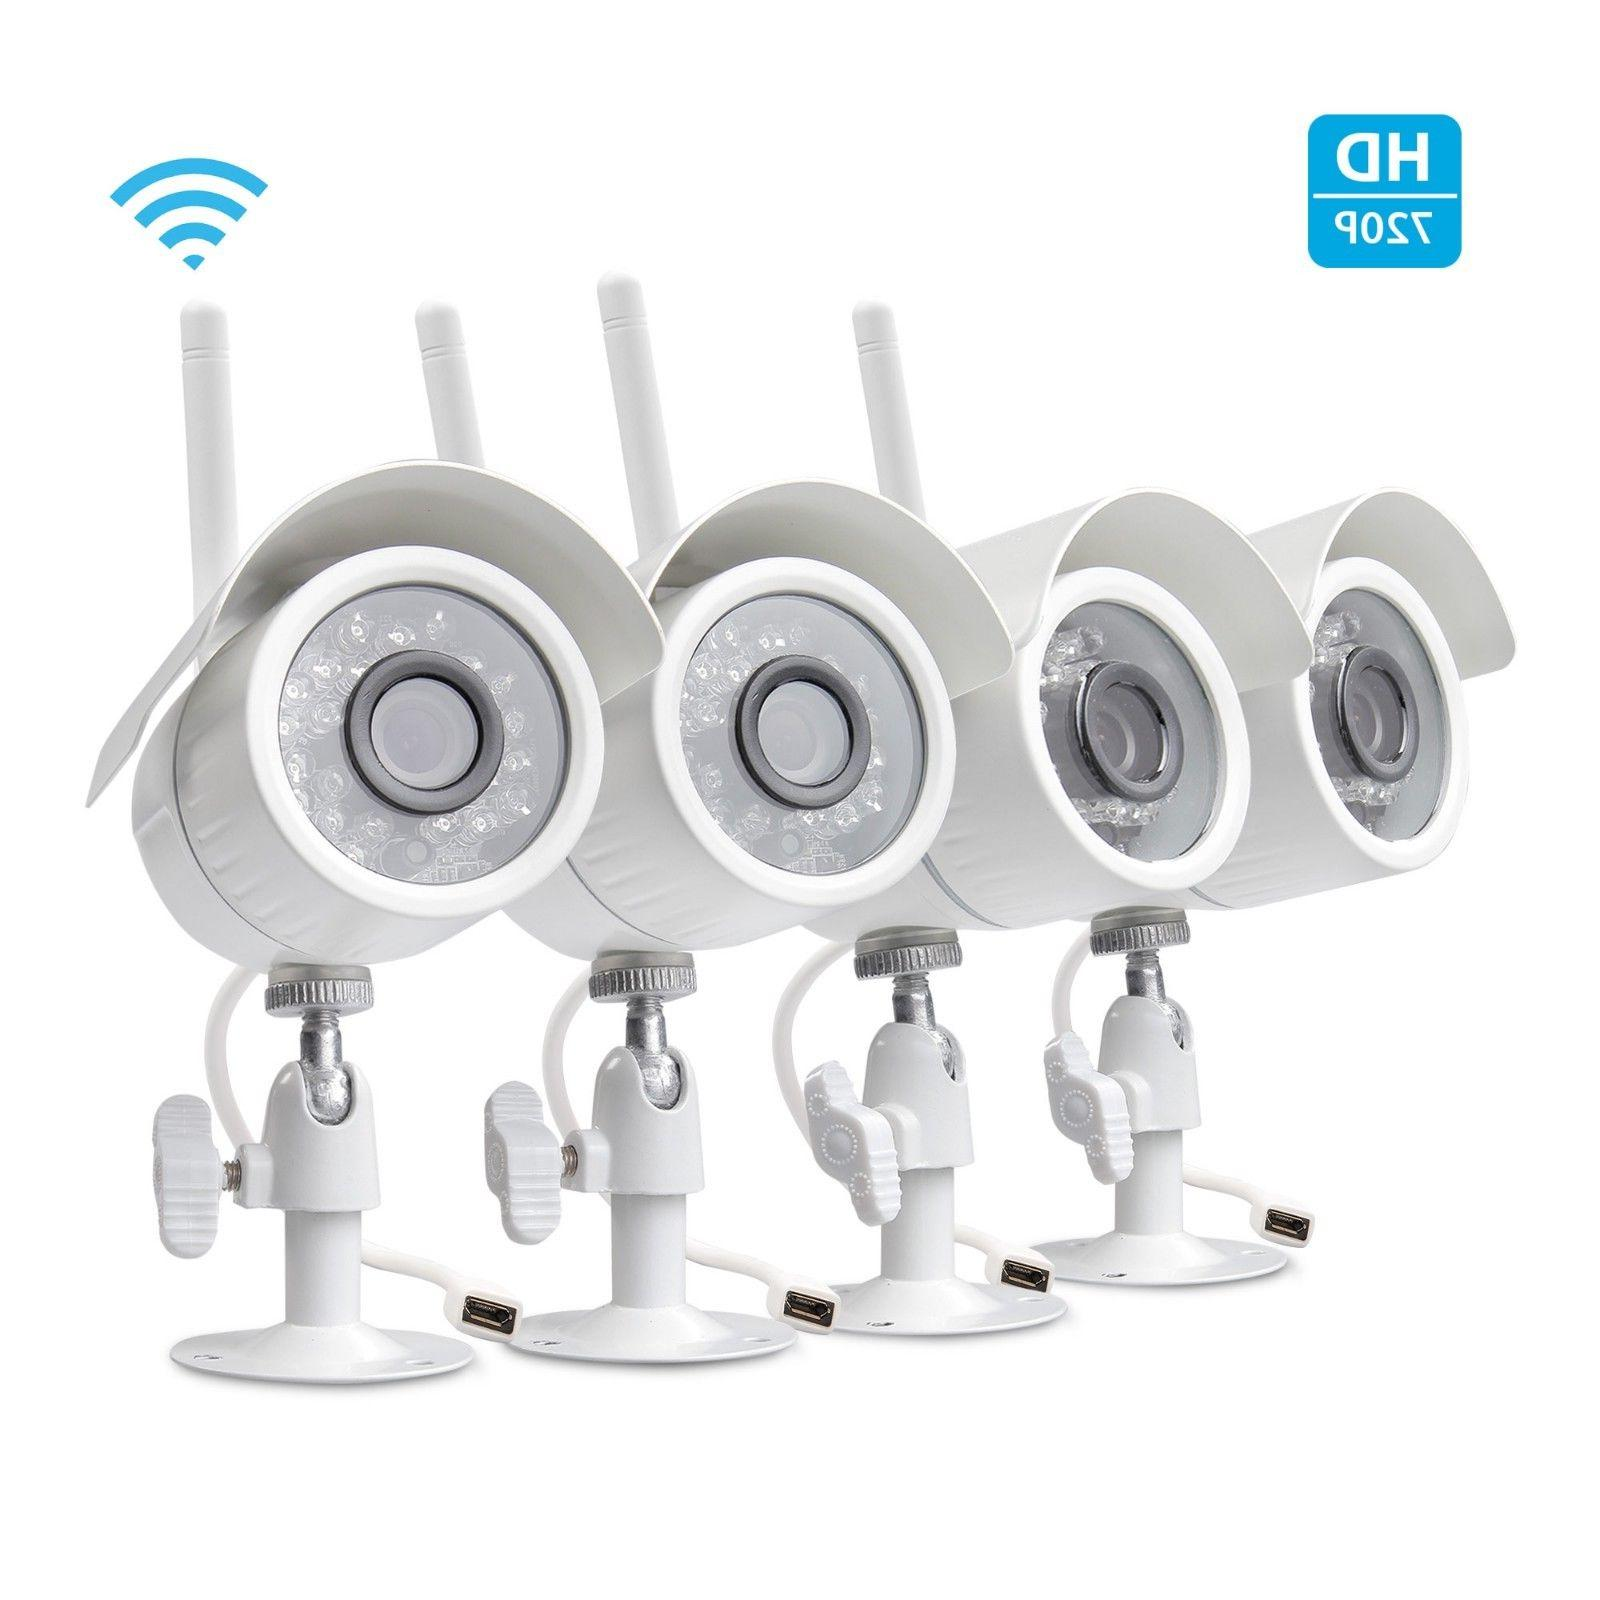 Funlux HDMI 4 Video Security System 500GB HDD